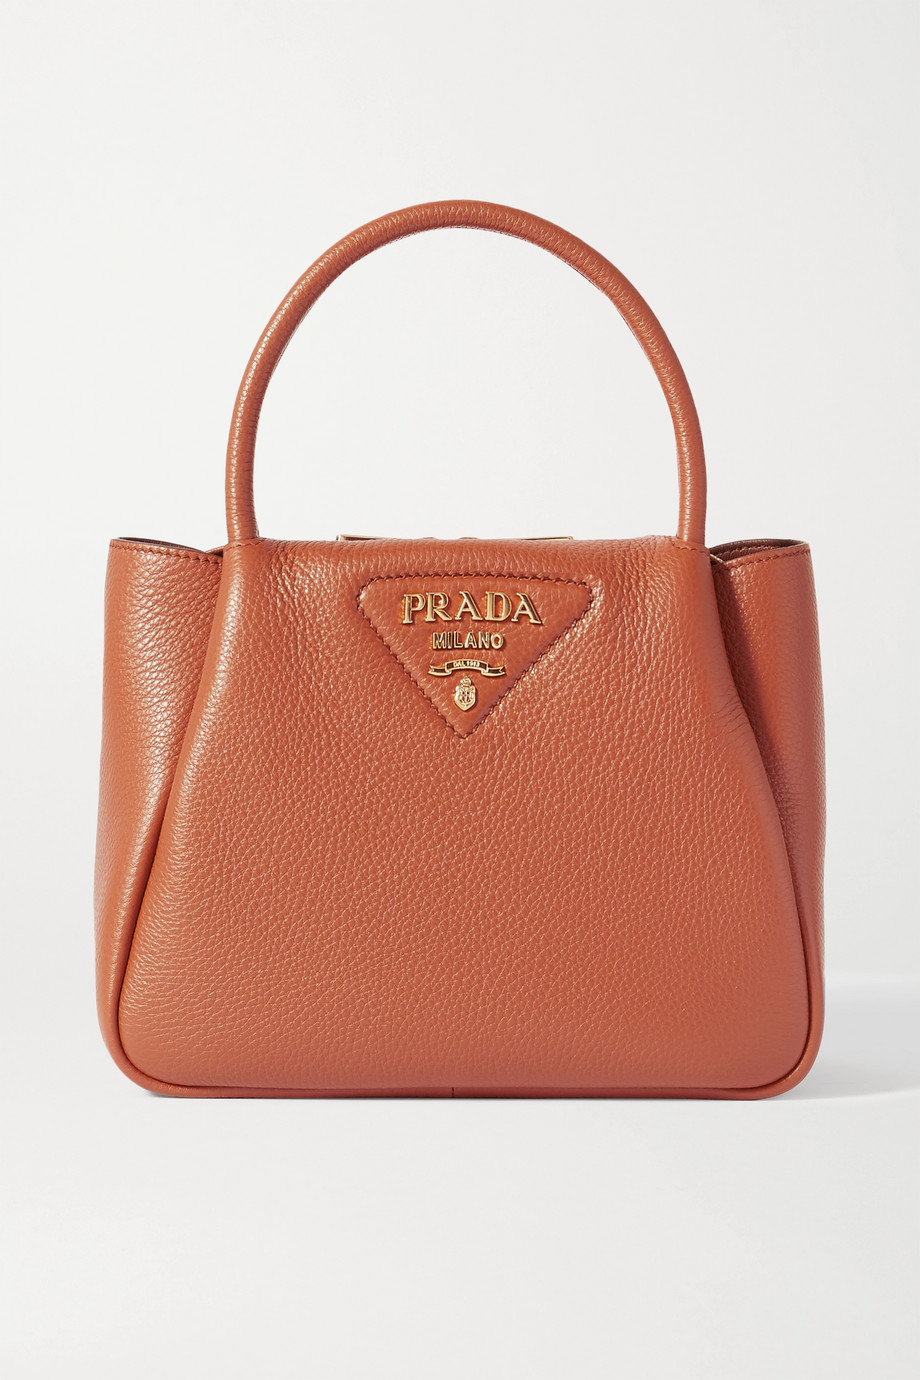 Prada Small textured-leather tote